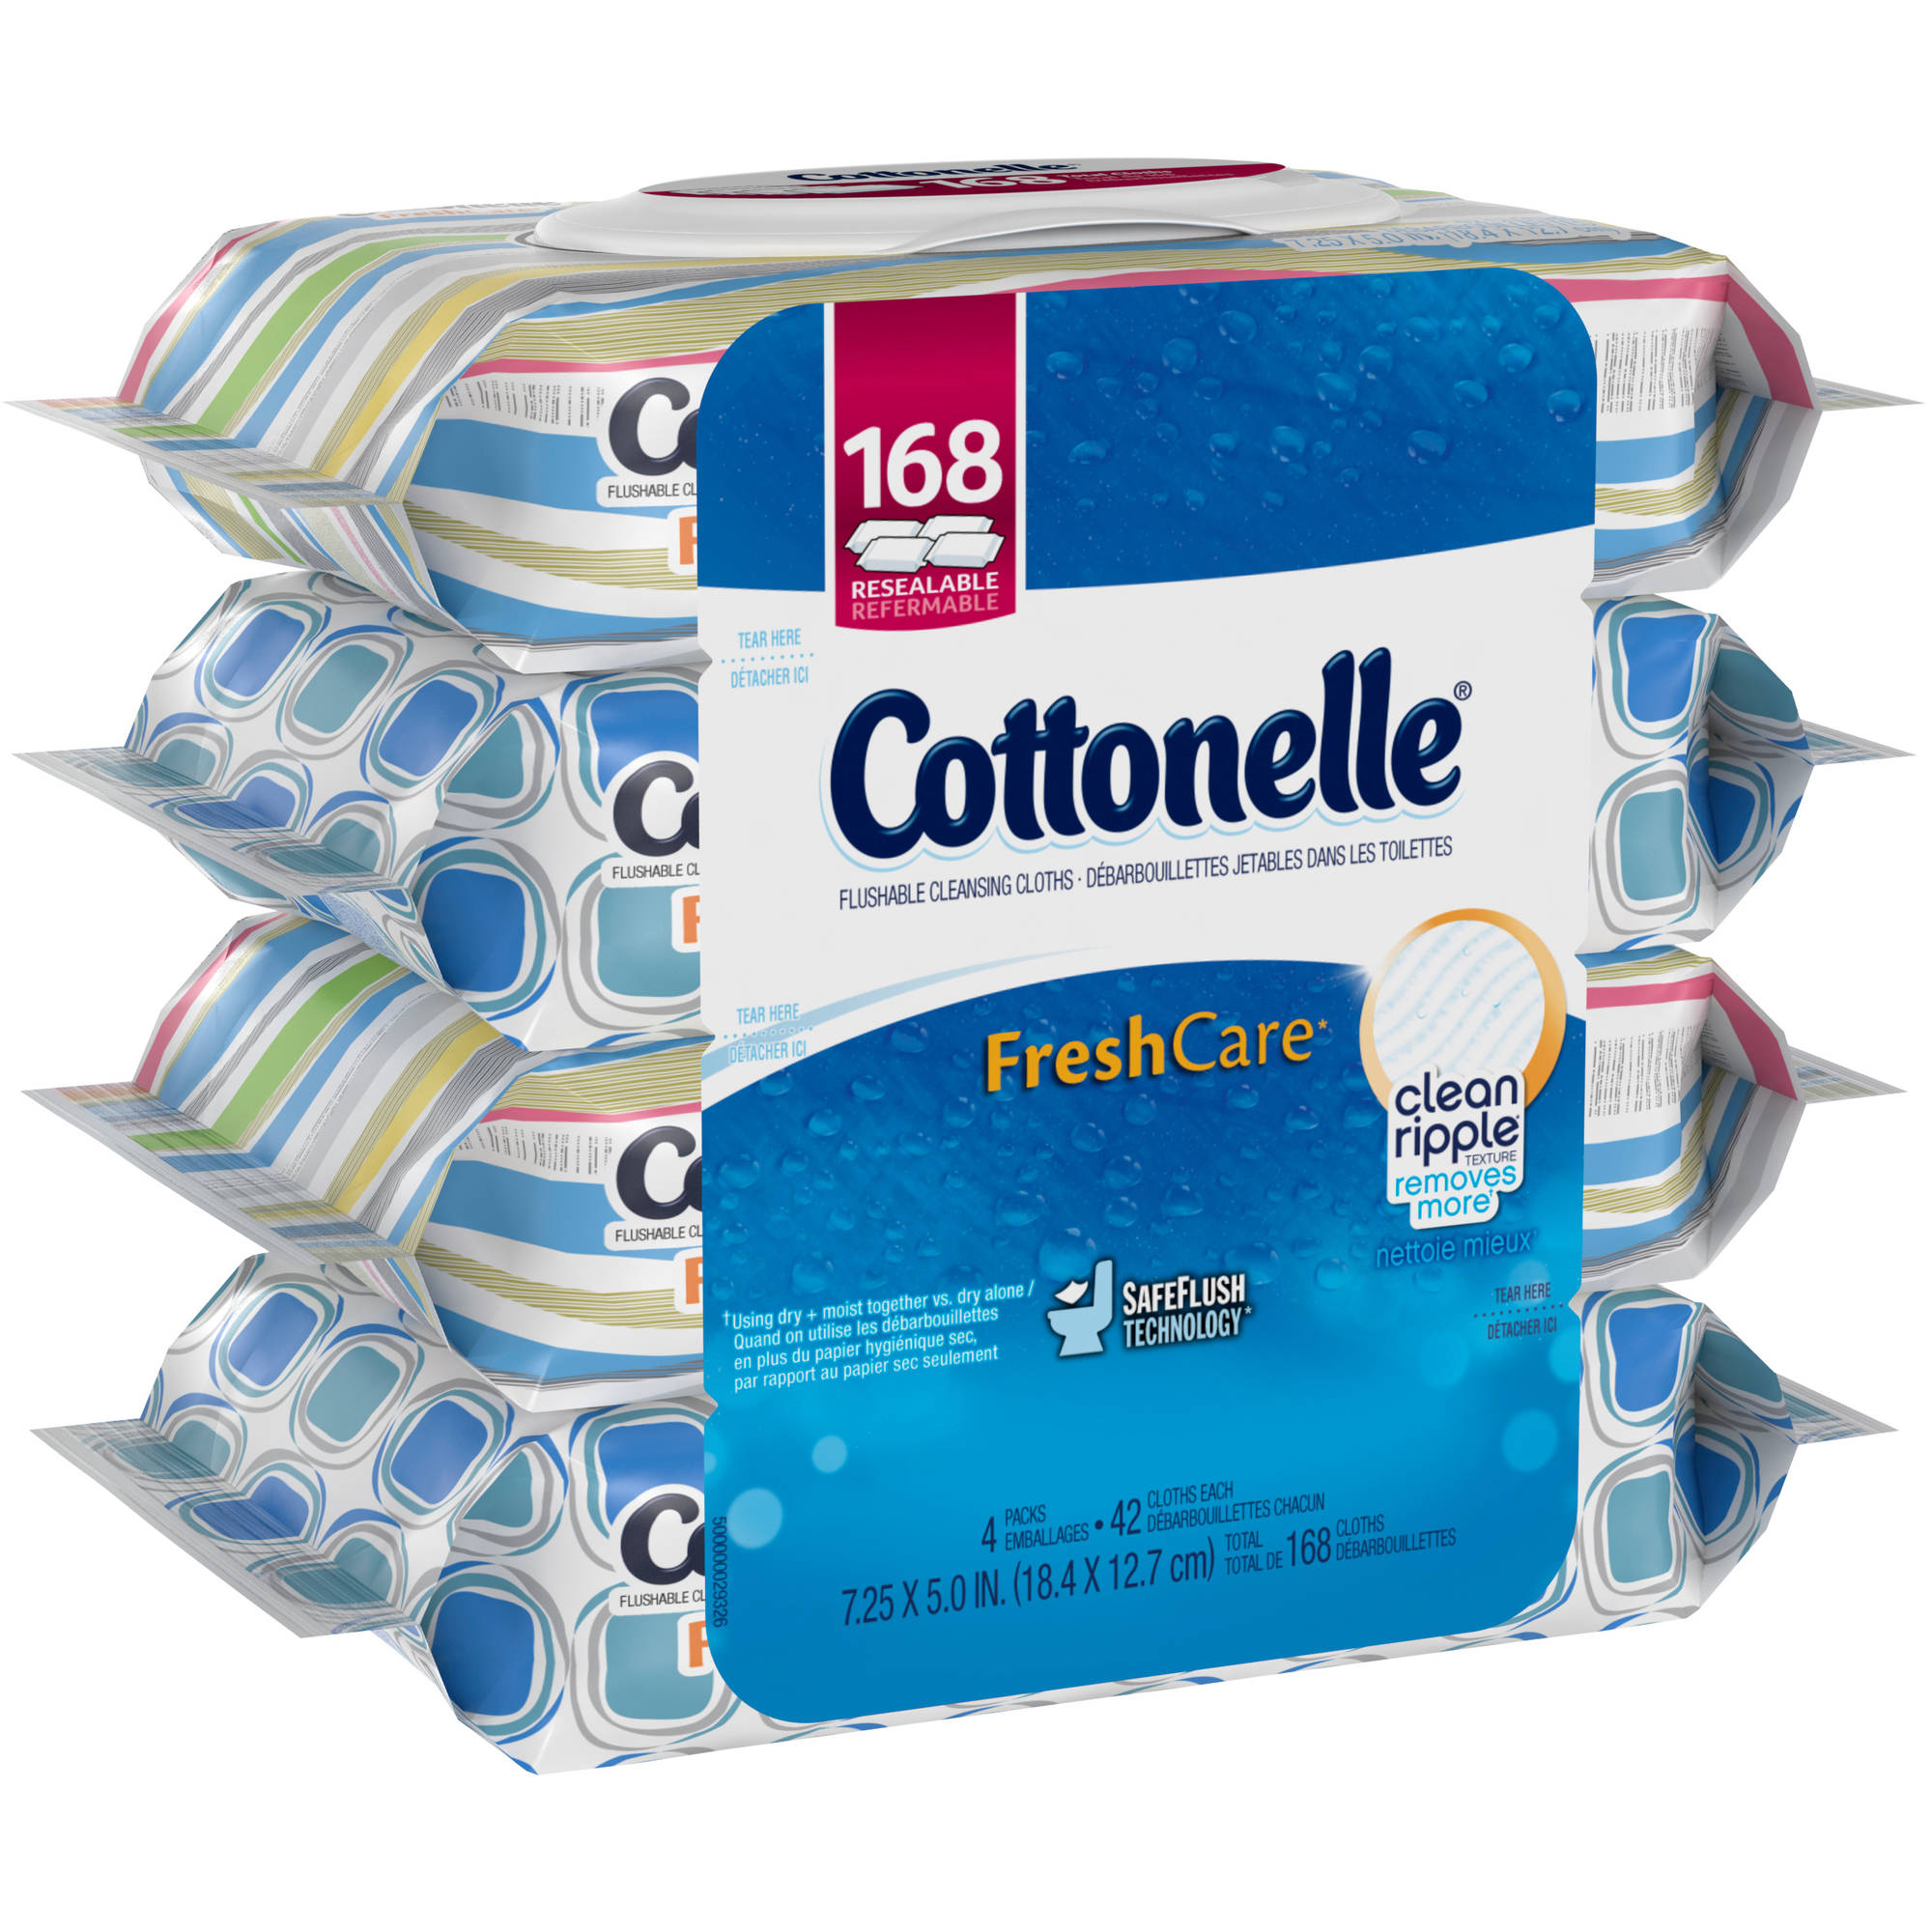 Cottonelle FreshCare Flushable Cleansing Cloths, 42 sheets, (Pack of 4)